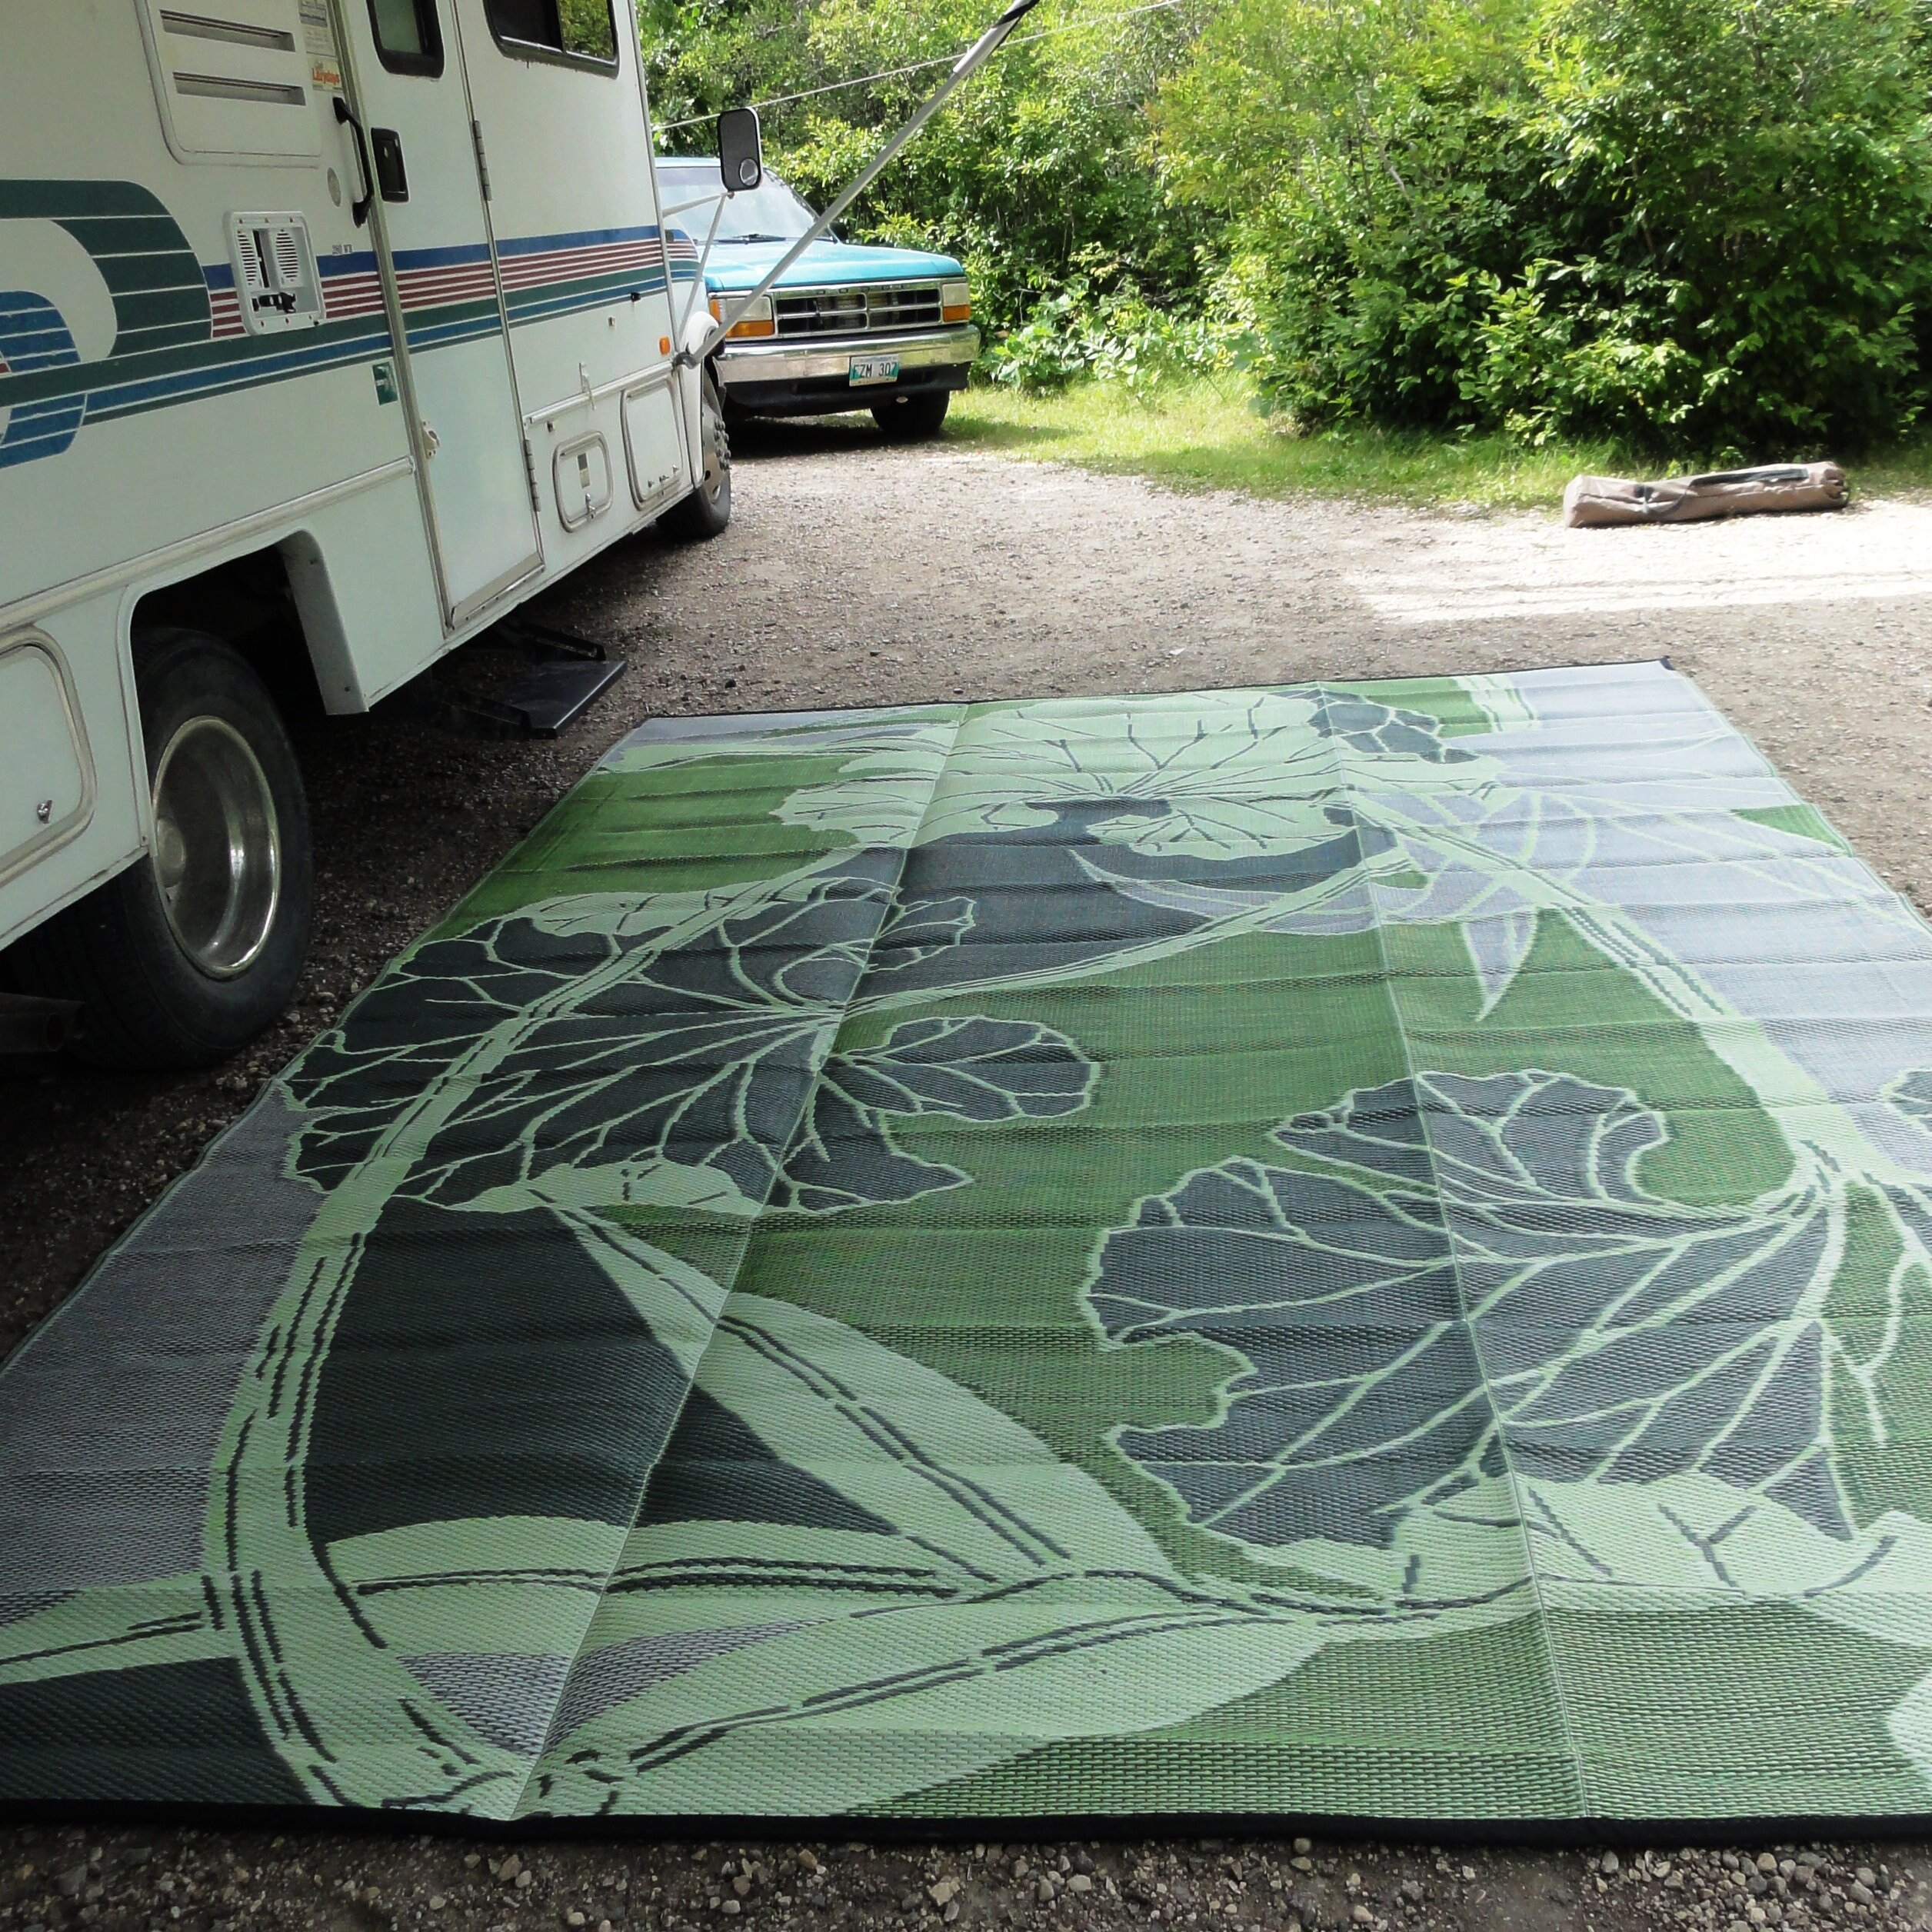 bonia Blossom RV Camping Patio Mat Green Grey